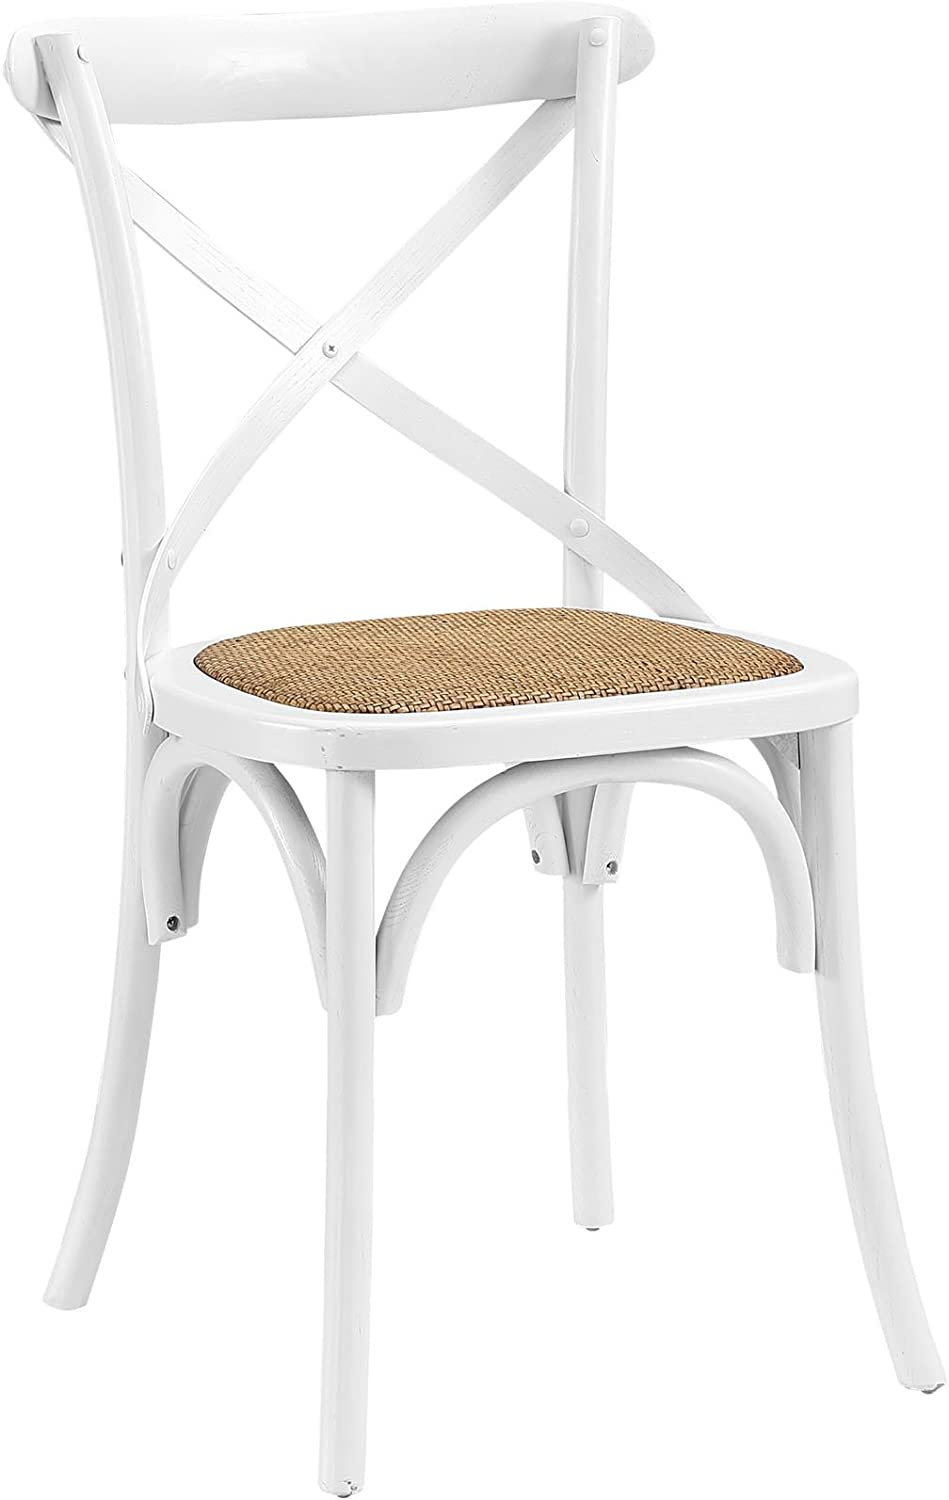 Modway Gear Rustic Farmhouse Elm Wood Rattan Kitchen and Dining Room Chair in White - Fully Assembled